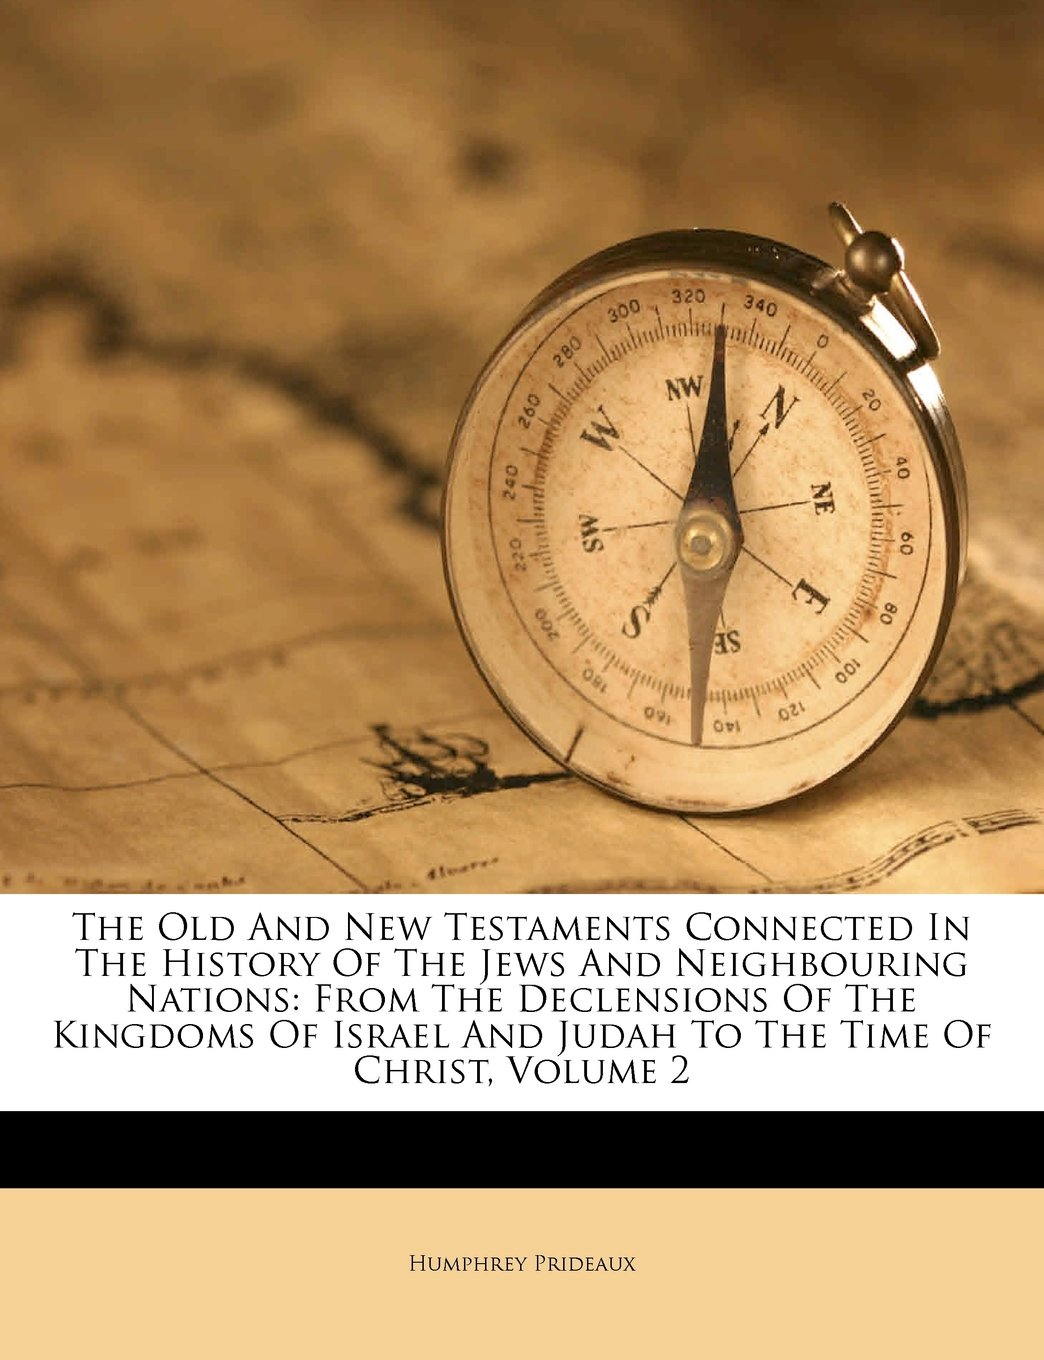 Download The Old And New Testaments Connected In The History Of The Jews And Neighbouring Nations: From The Declensions Of The Kingdoms Of Israel And Judah To The Time Of Christ, Volume 2 pdf epub